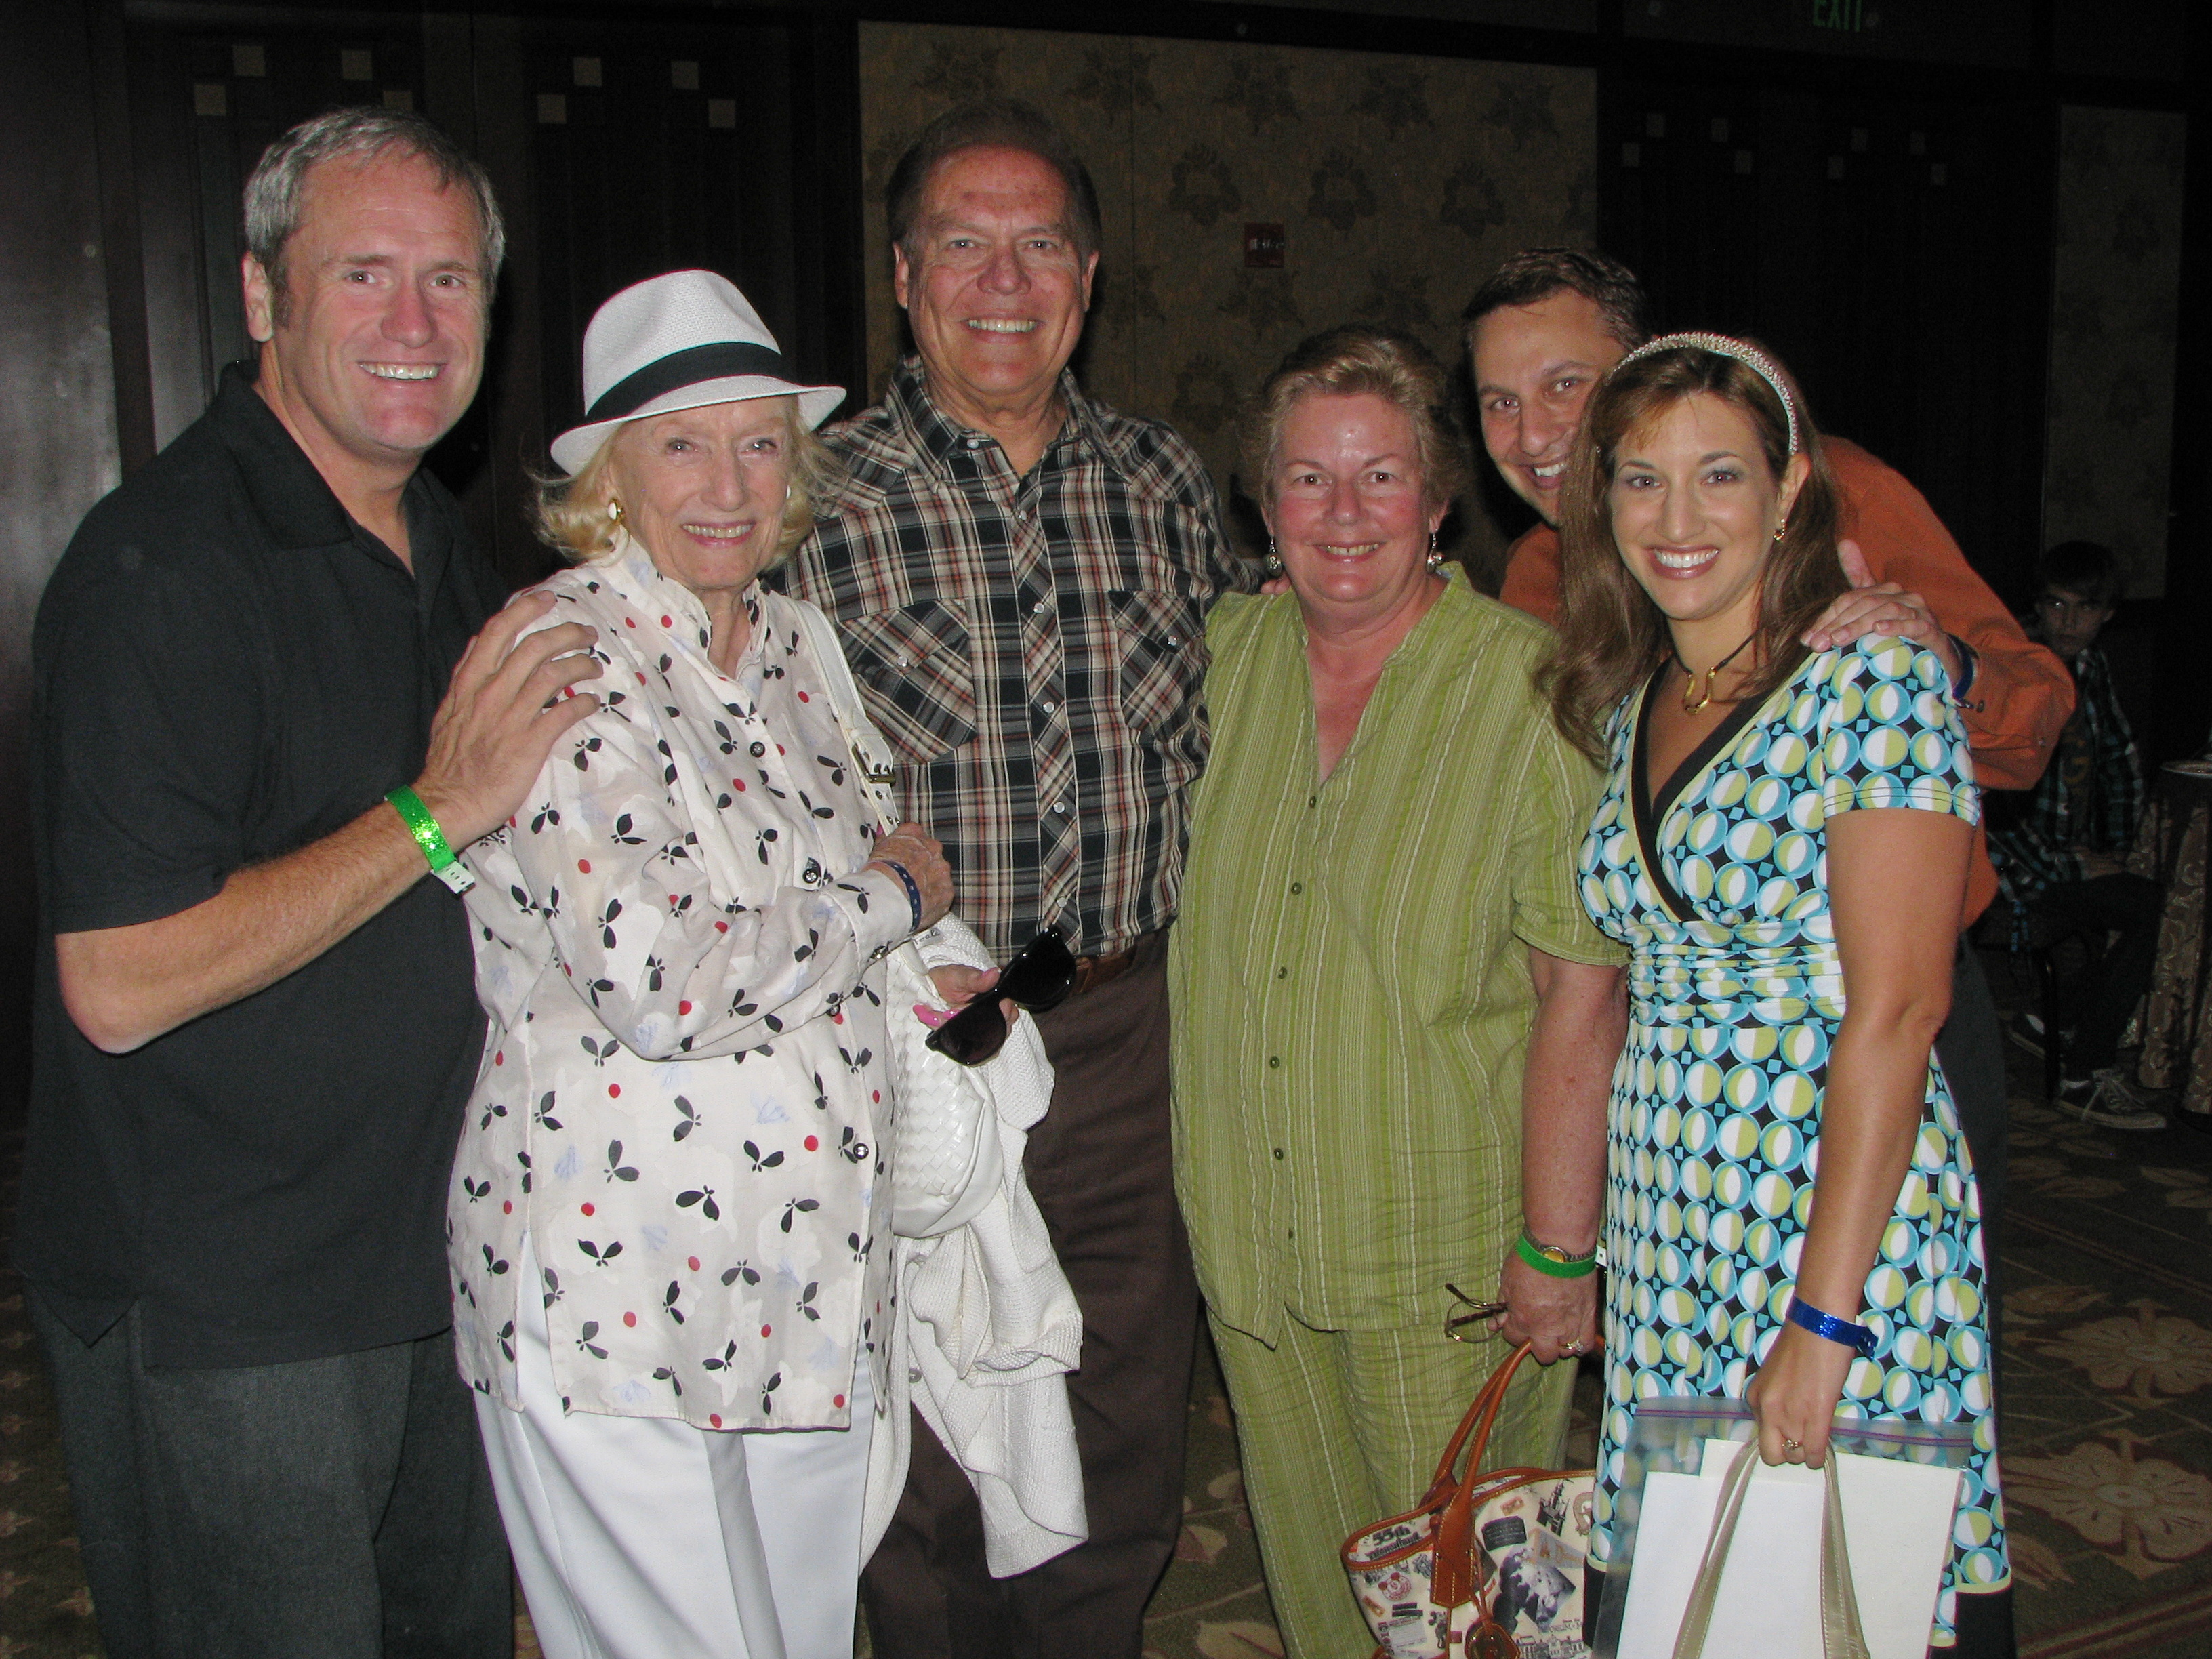 My dear friend James Gray, Miriam Nelson, original Mousketeer Bobby Burgess and his wife Christie, me and Shani